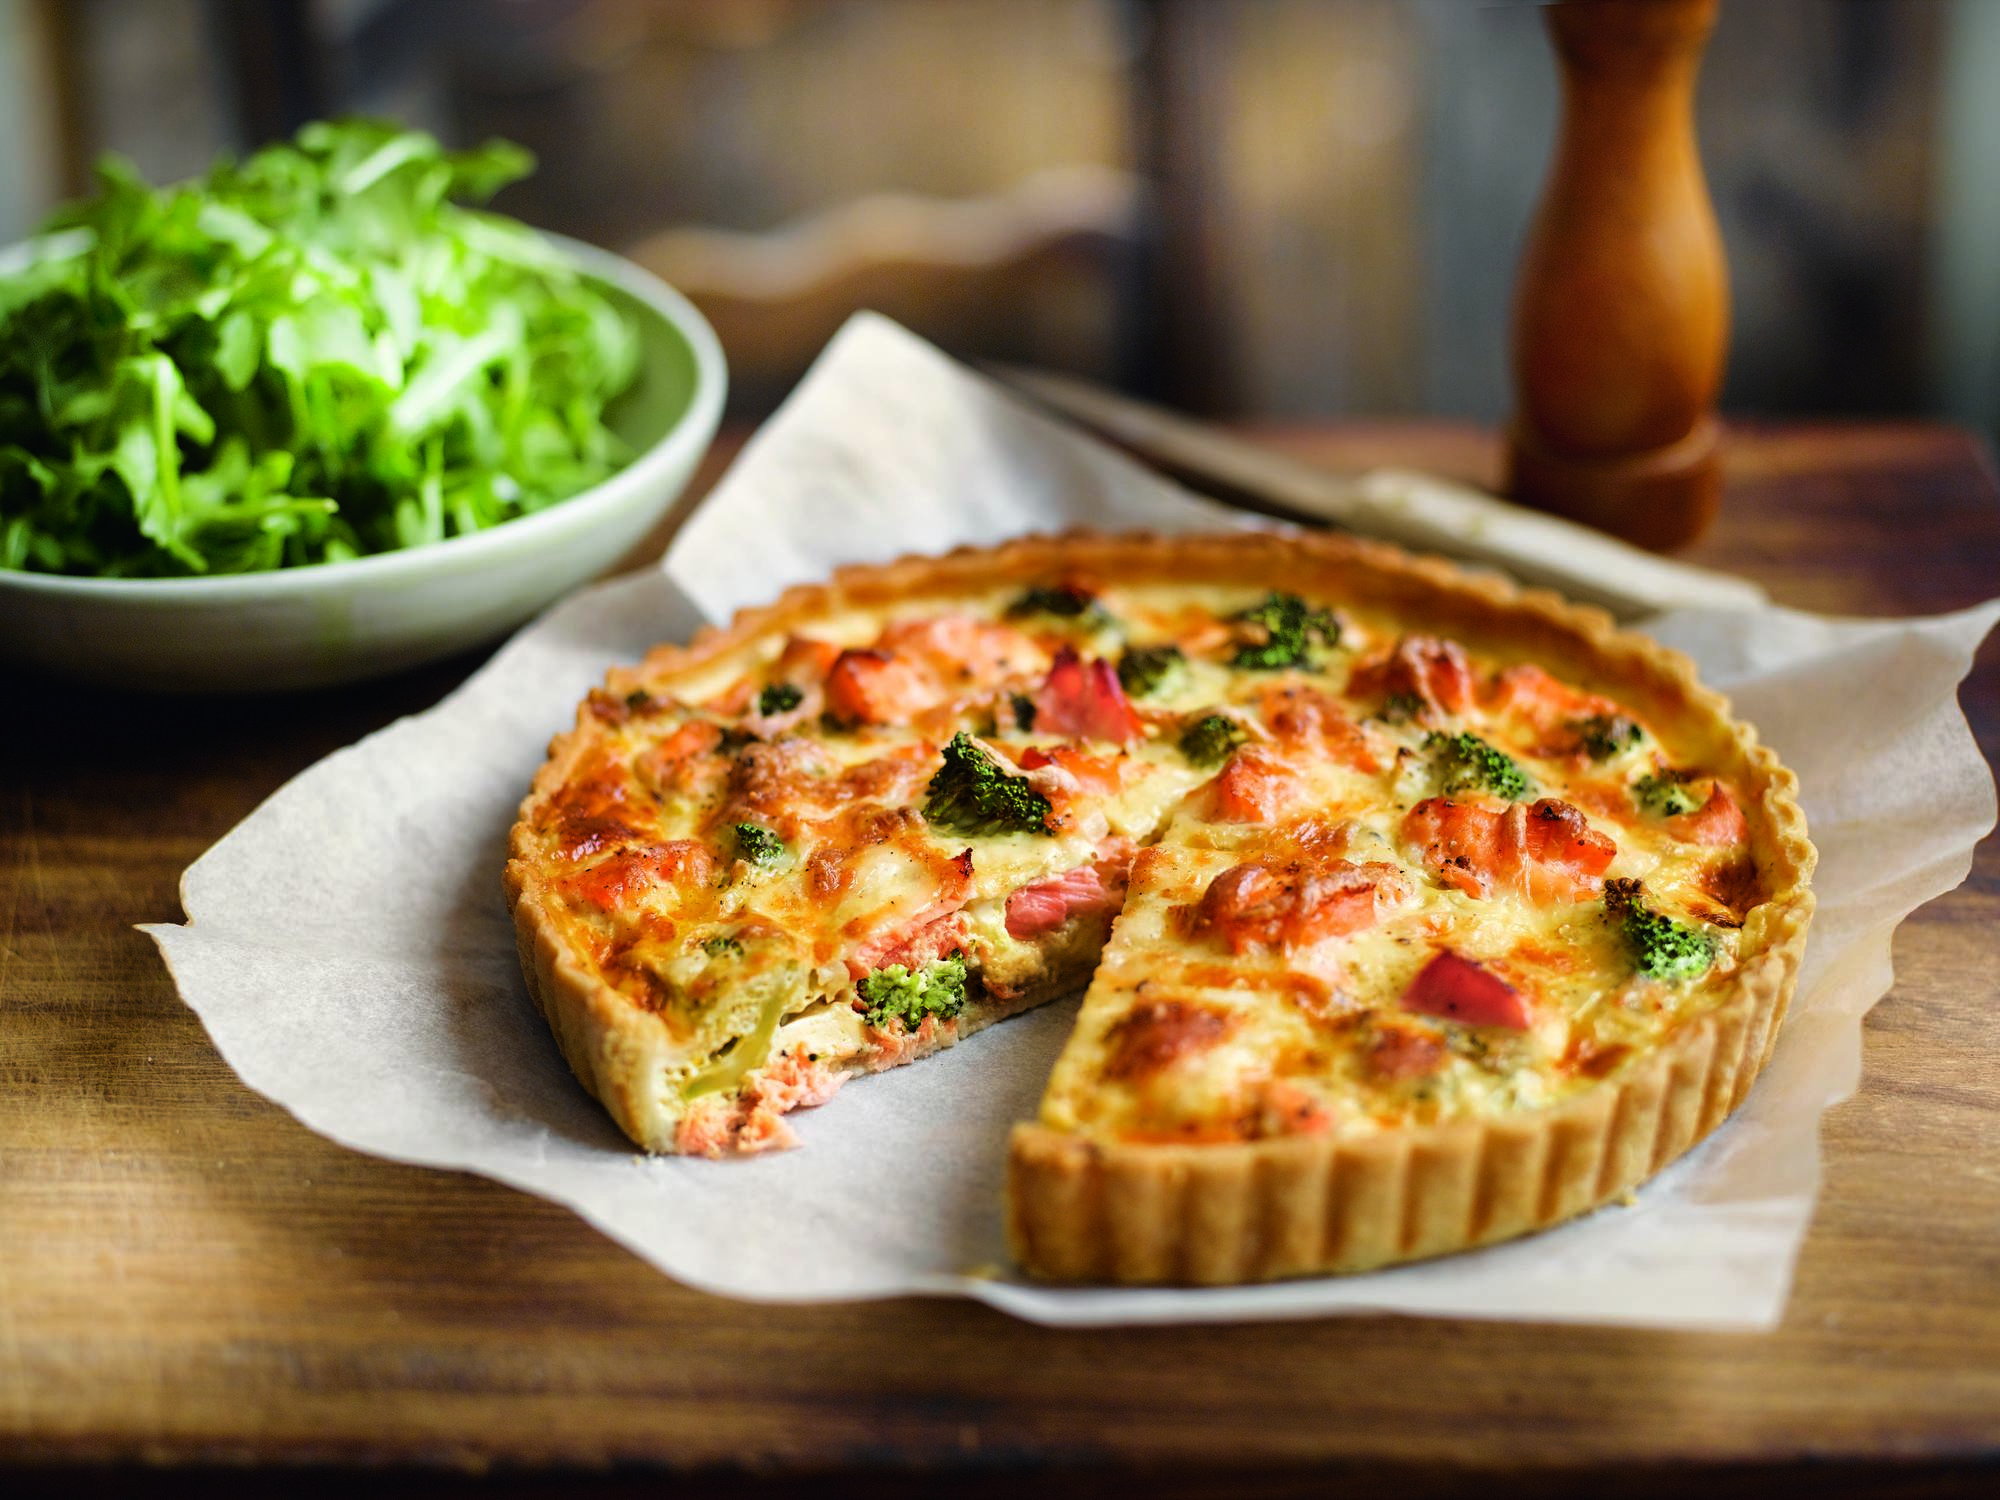 Lachs Brokkoli Quiche